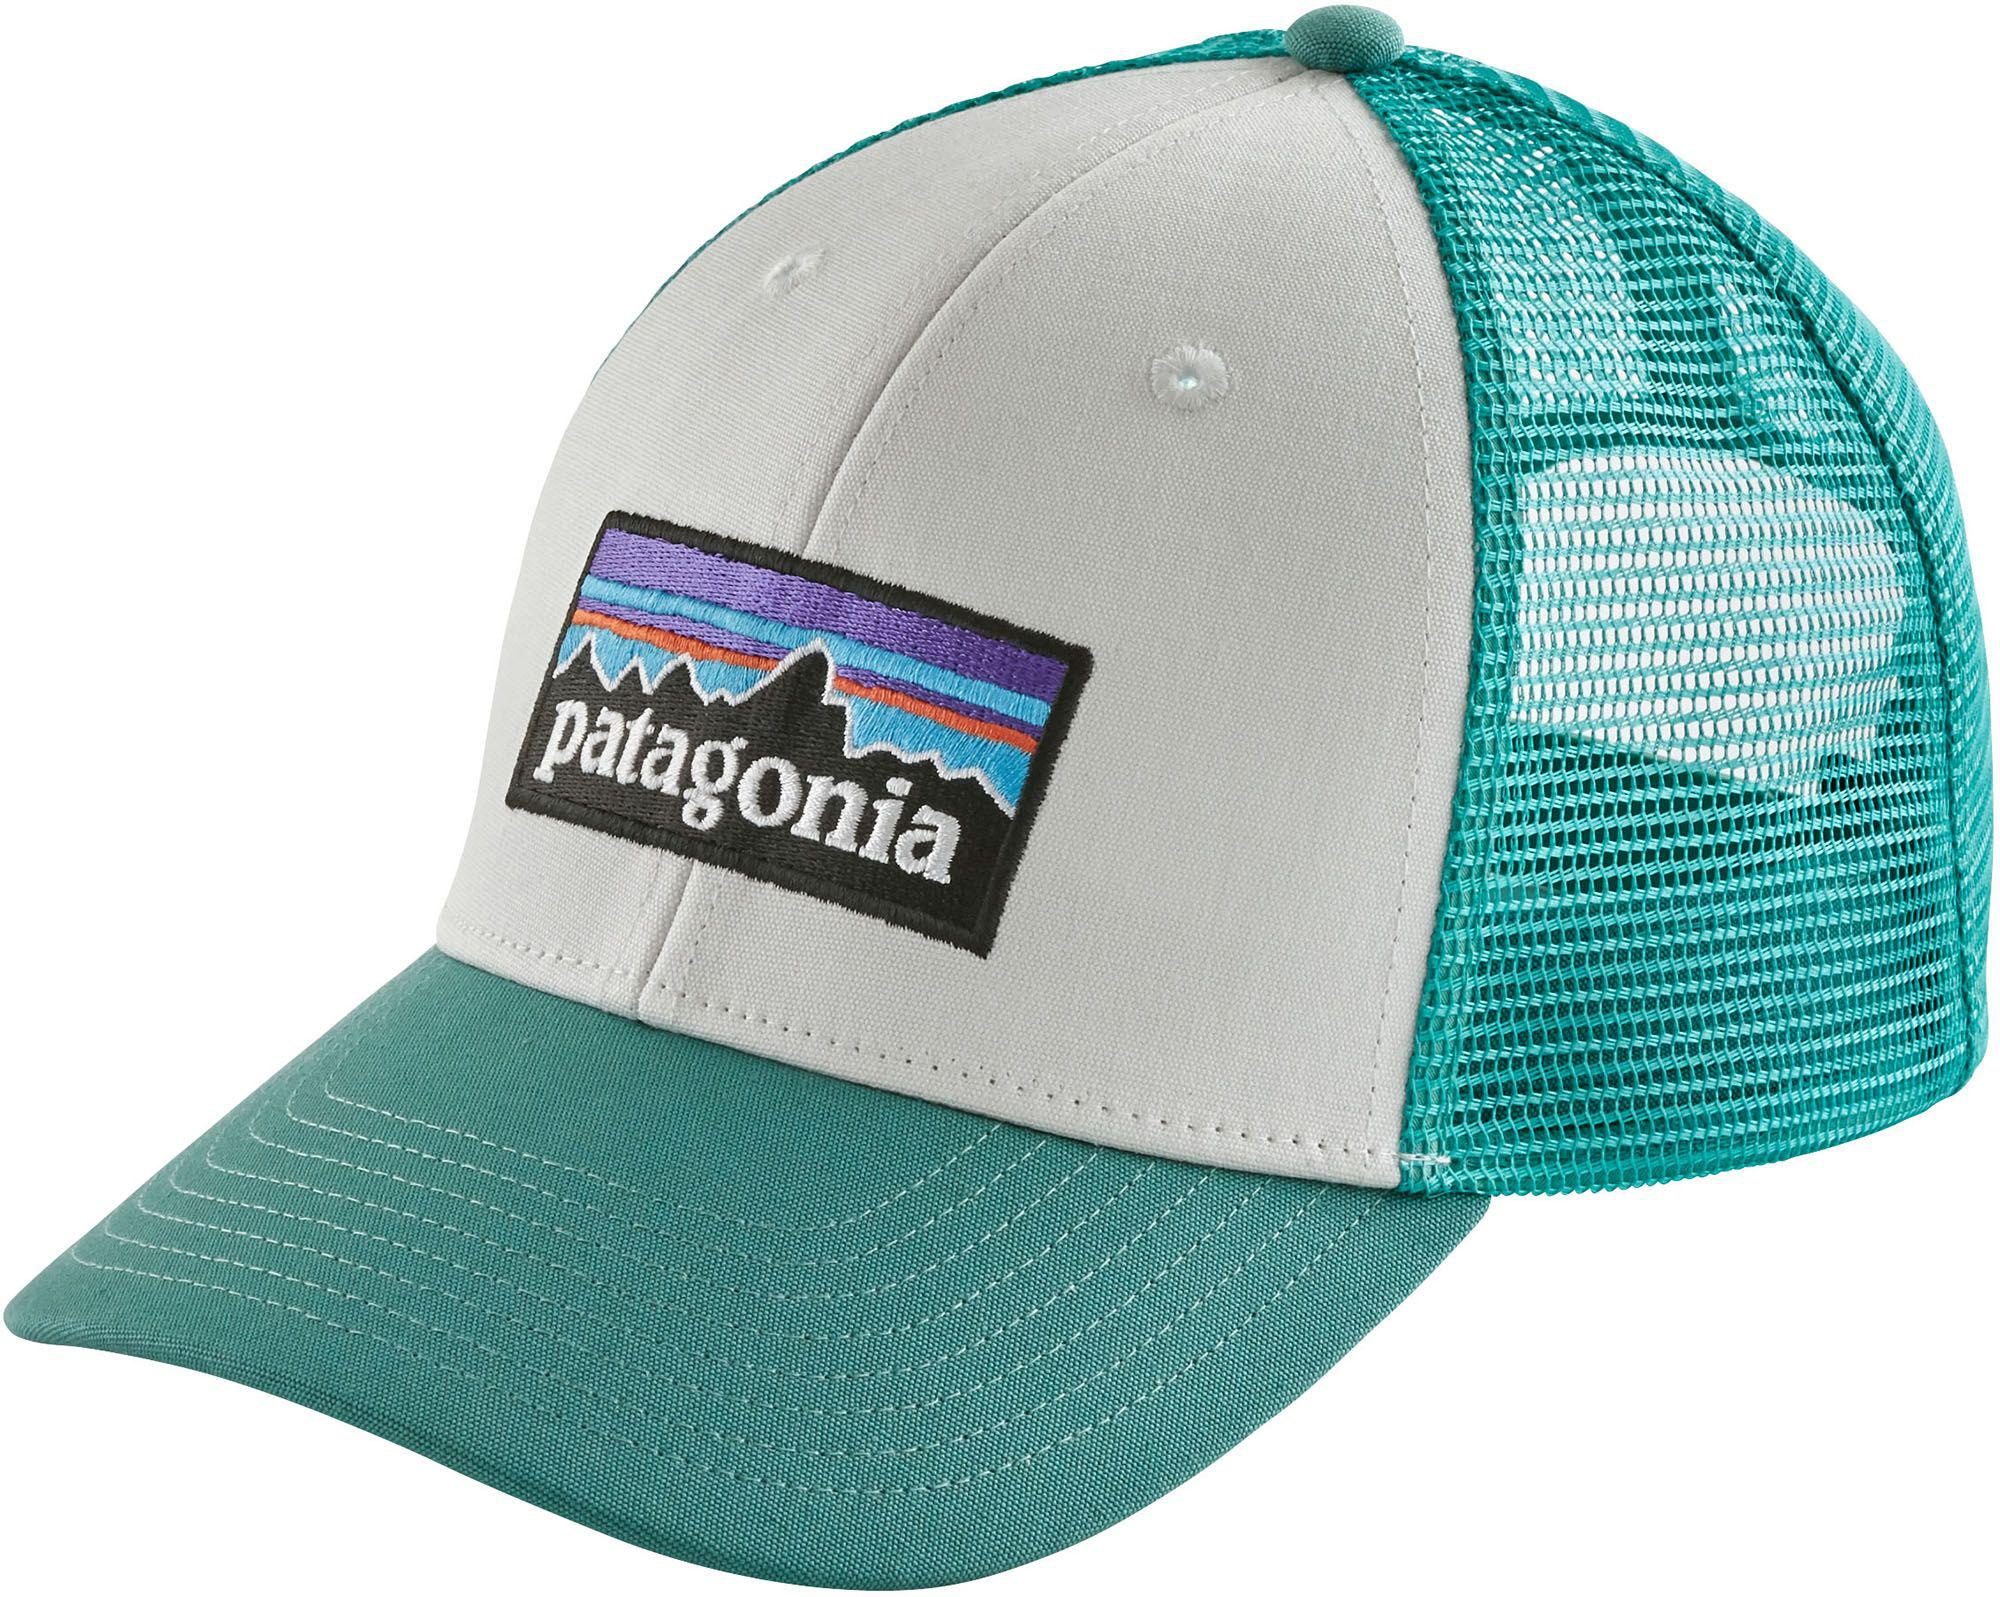 Lyst - Patagonia P-6 Lopro Trucker Hat in Green for Men 6658316fc4c0